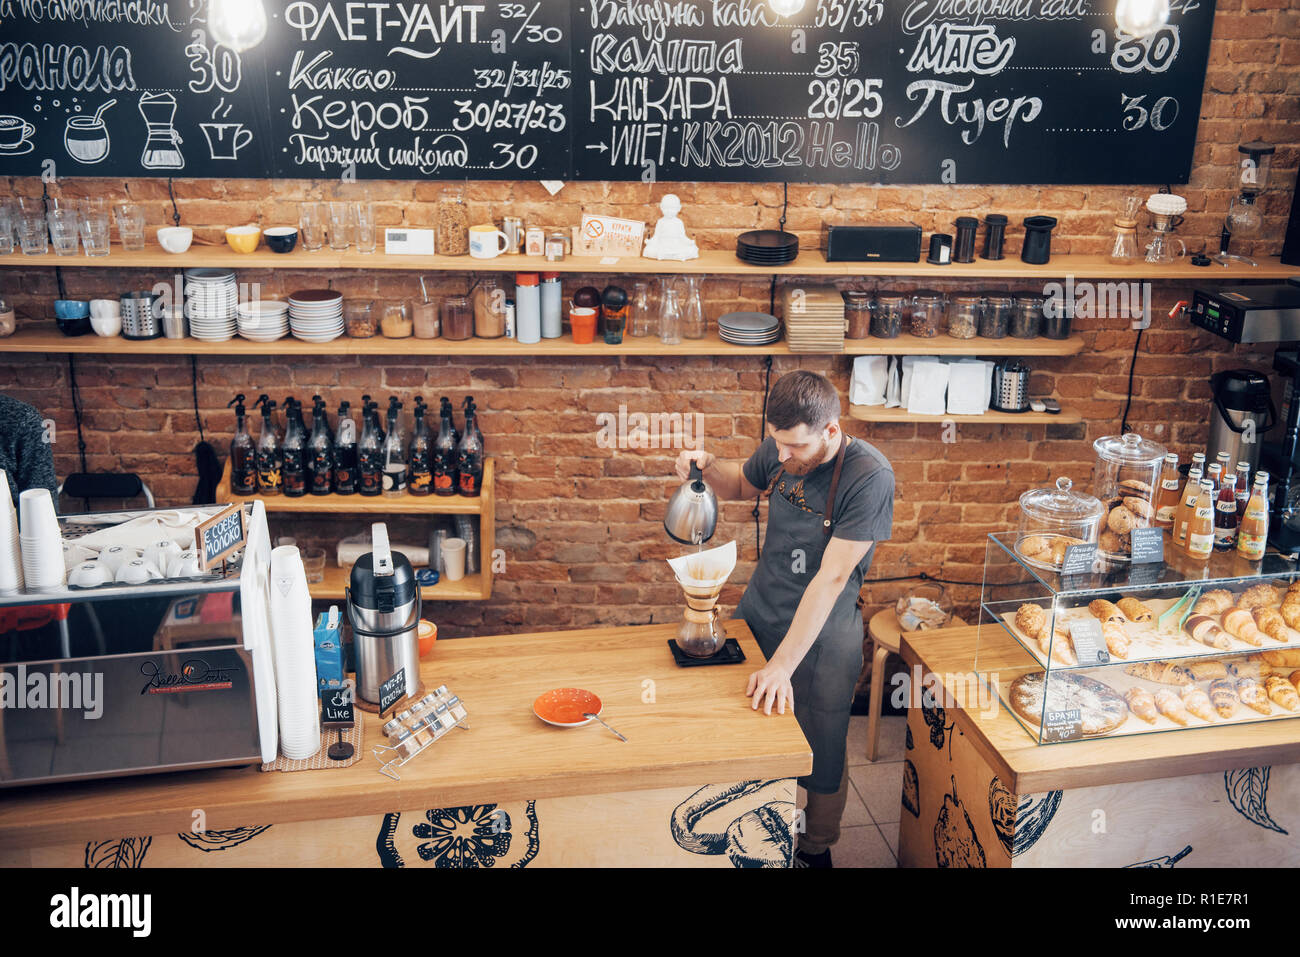 Coffee Shop Bar Counter Cafe Restaurant Relaxation Concept Stock Photo Alamy